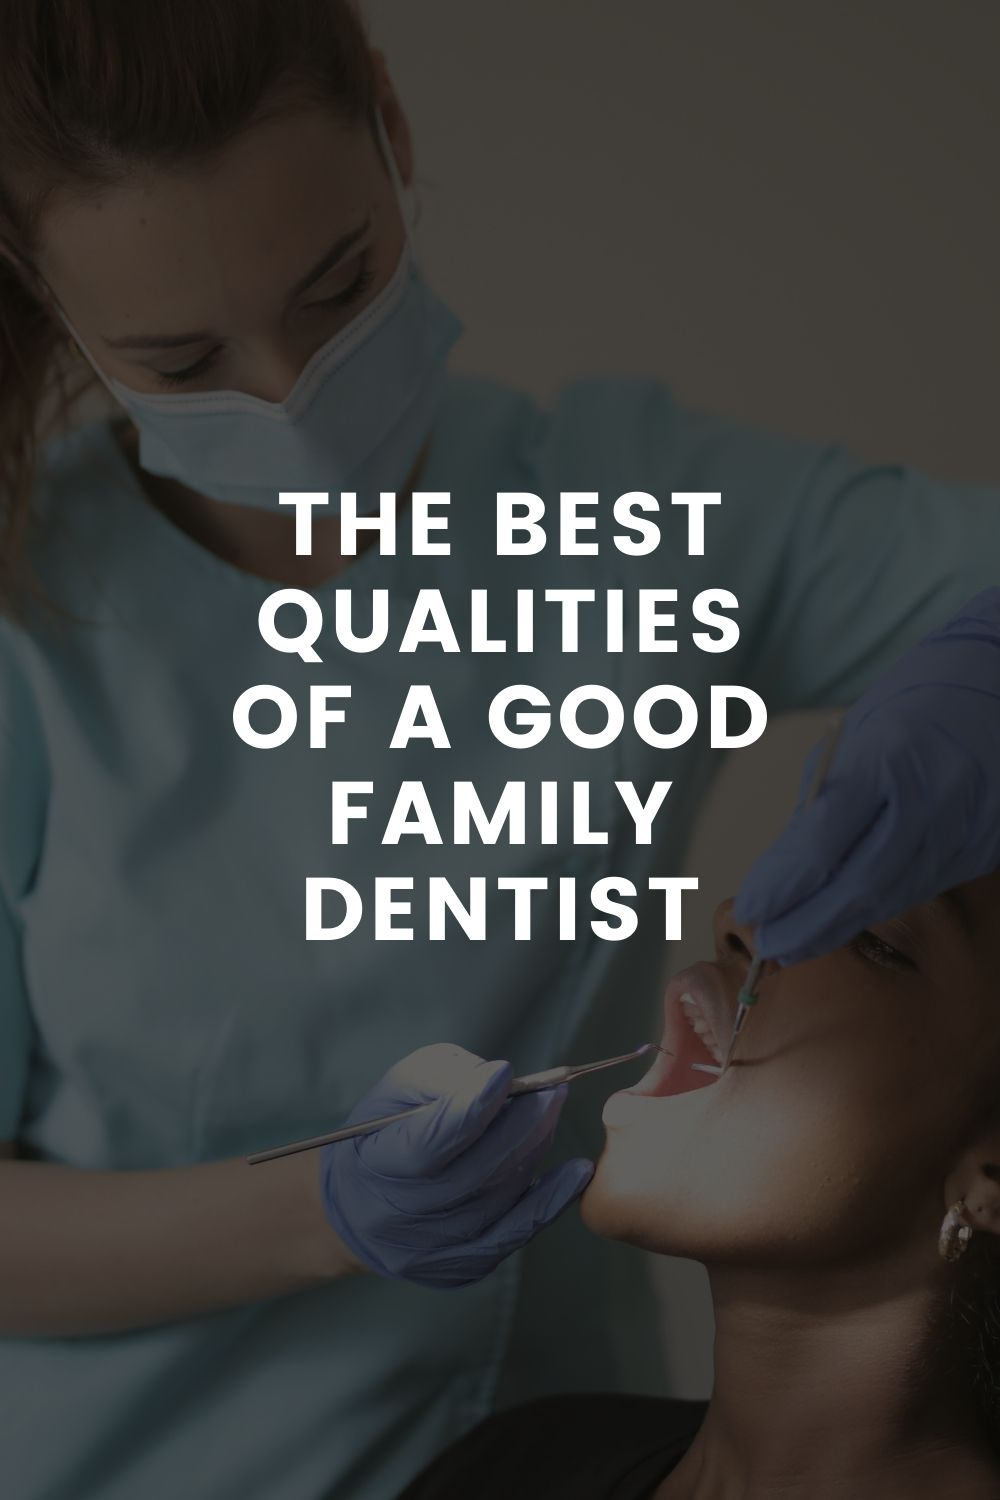 The Best Qualities of a Good Family Dentist